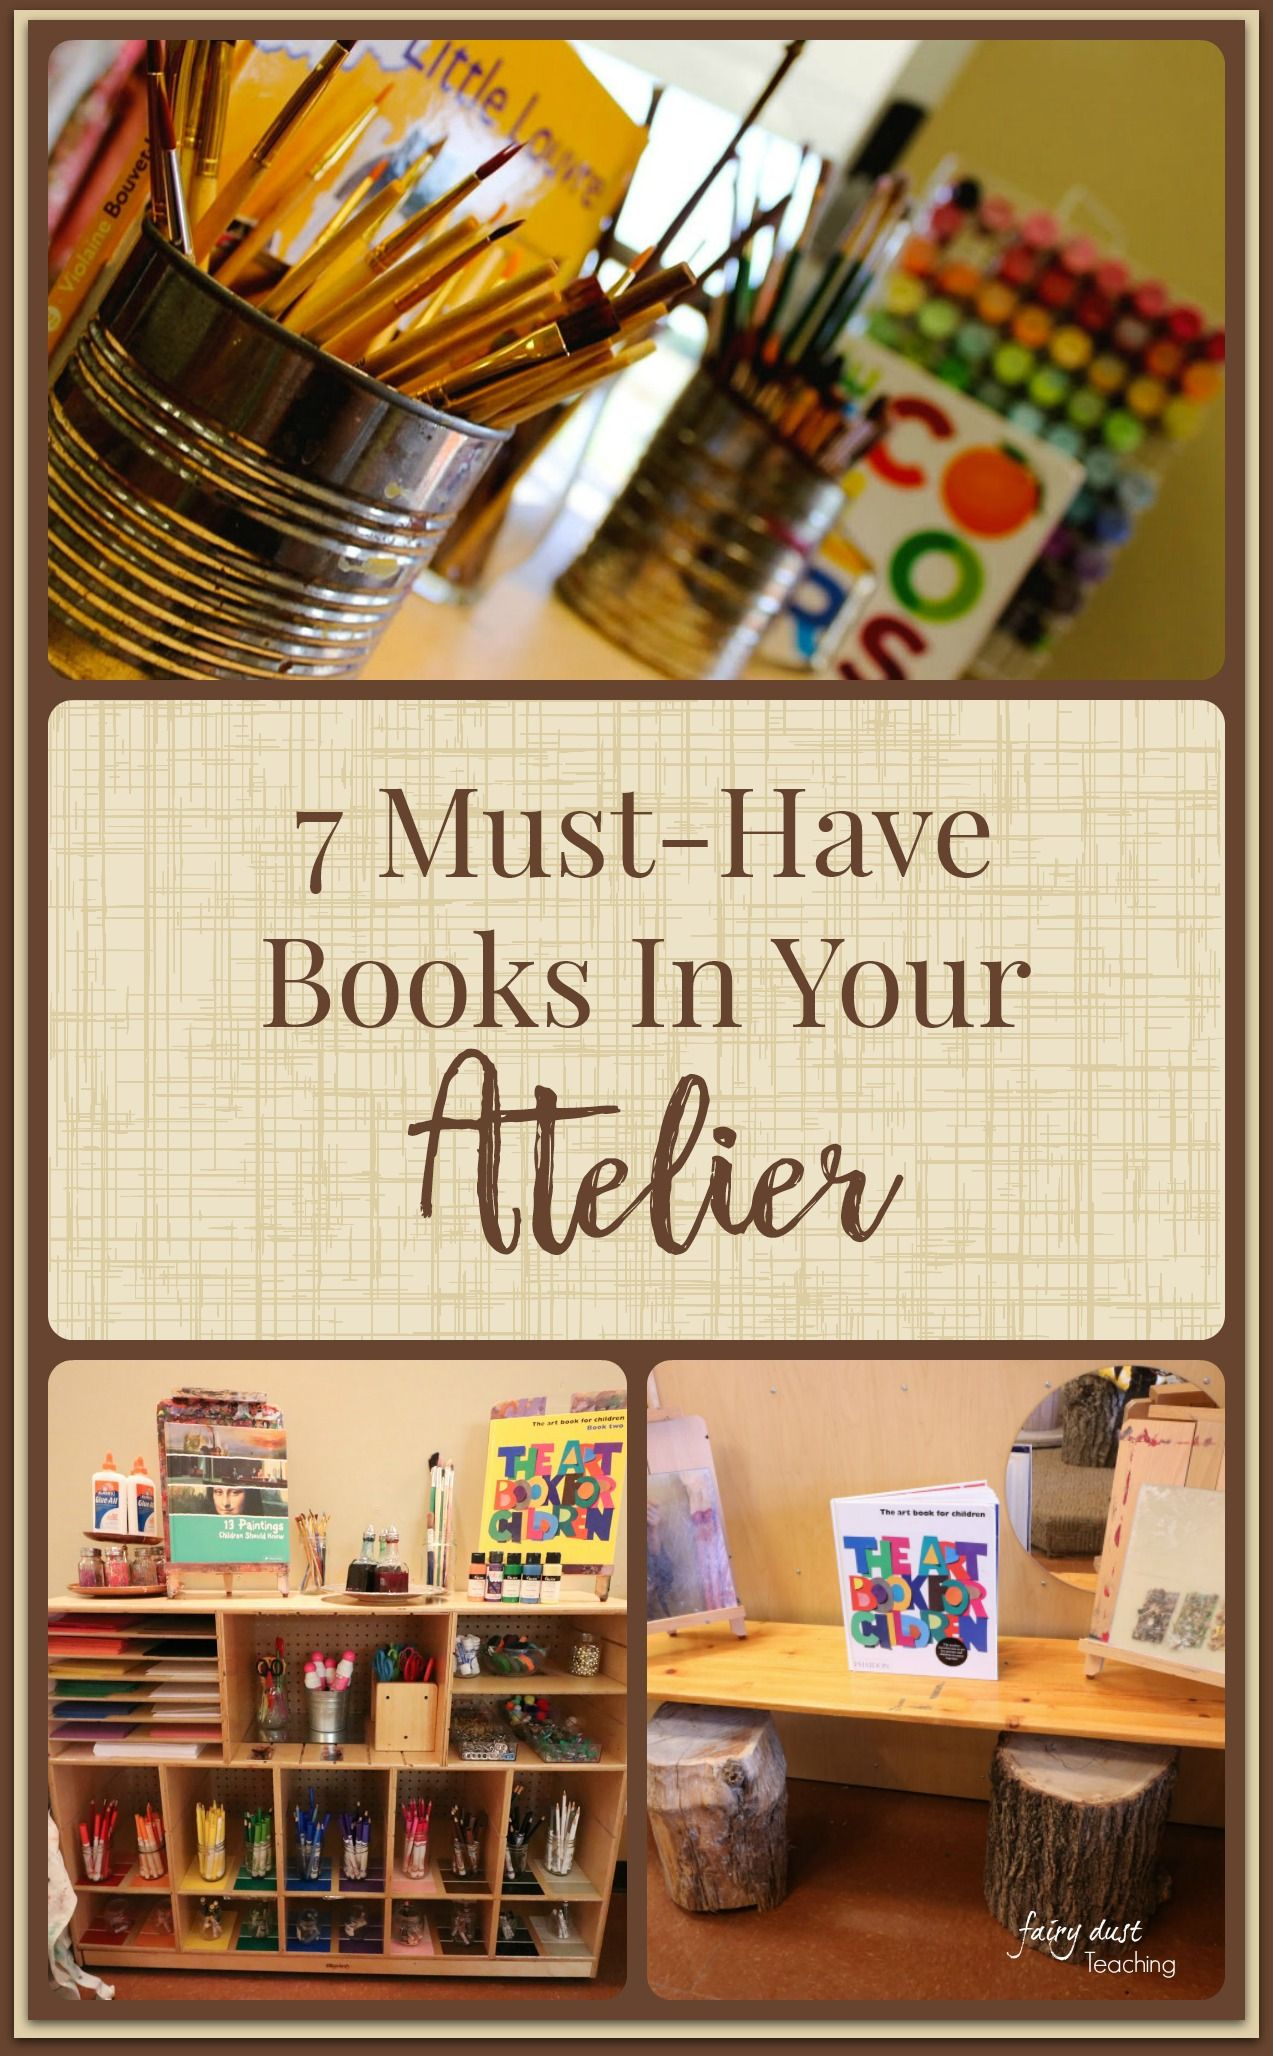 7 musthave books in your atelier with images fairy